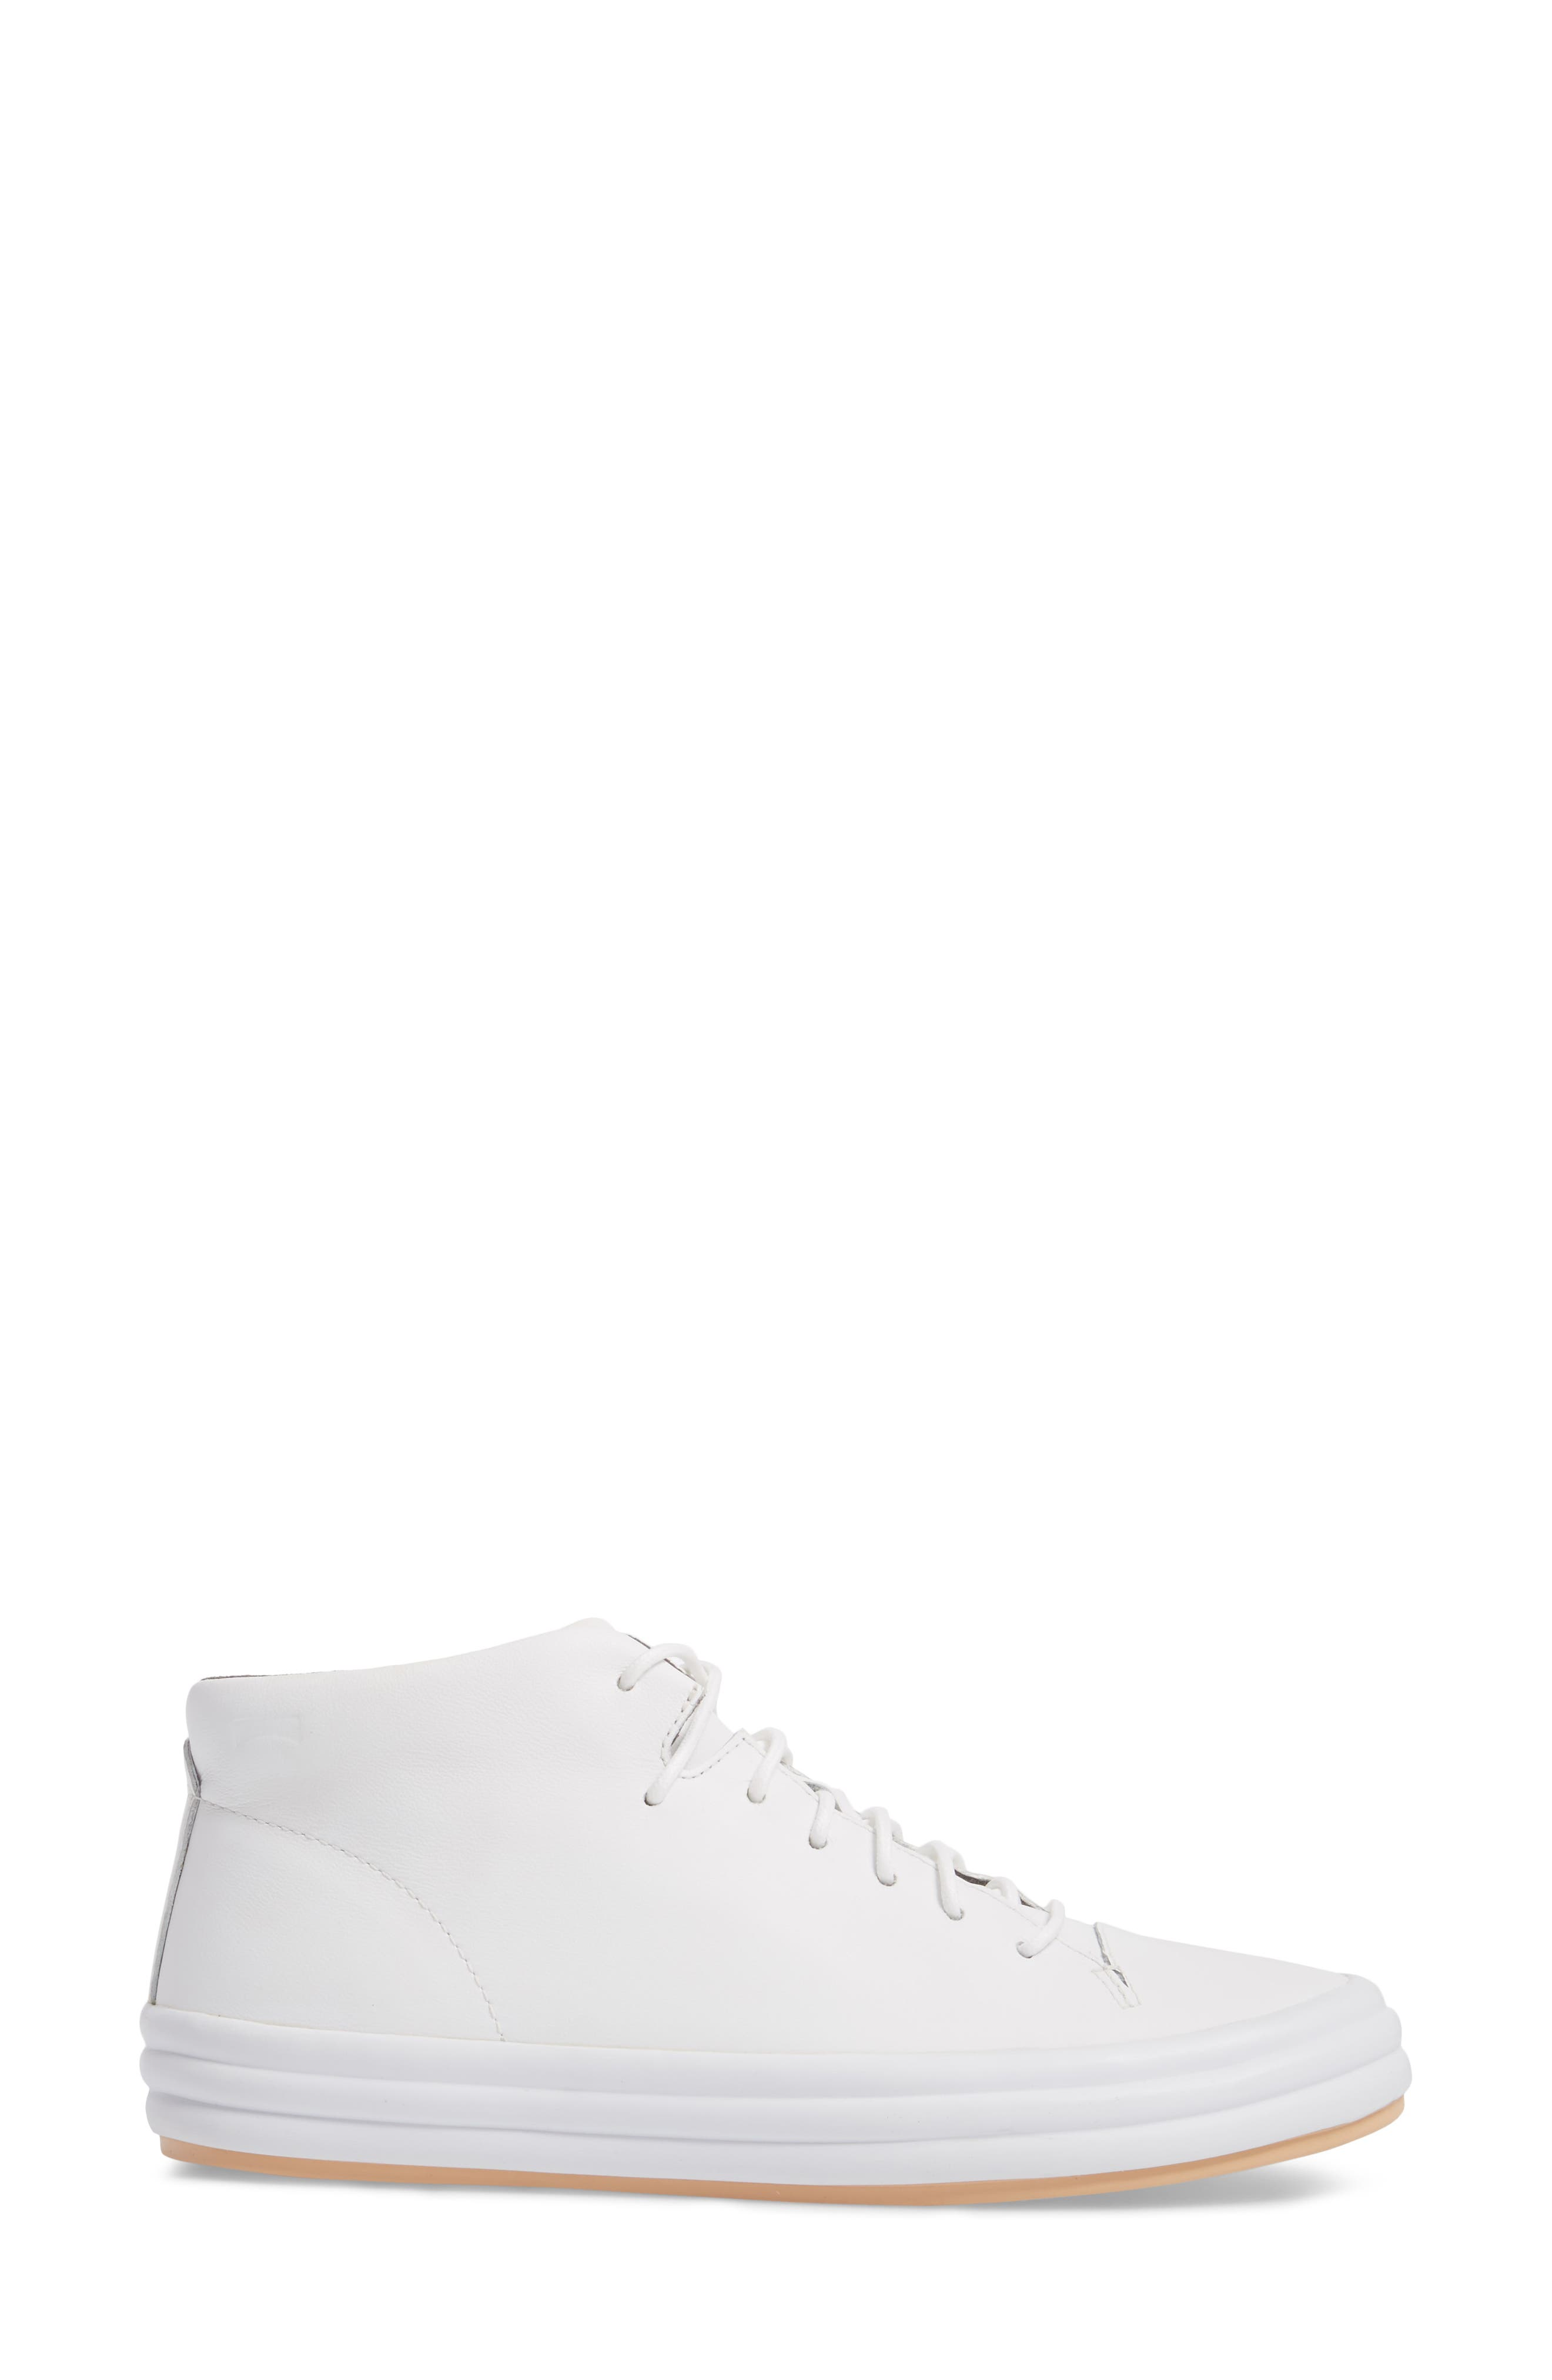 Hoops Mid Top Sneaker,                             Alternate thumbnail 3, color,                             White Natural Leather